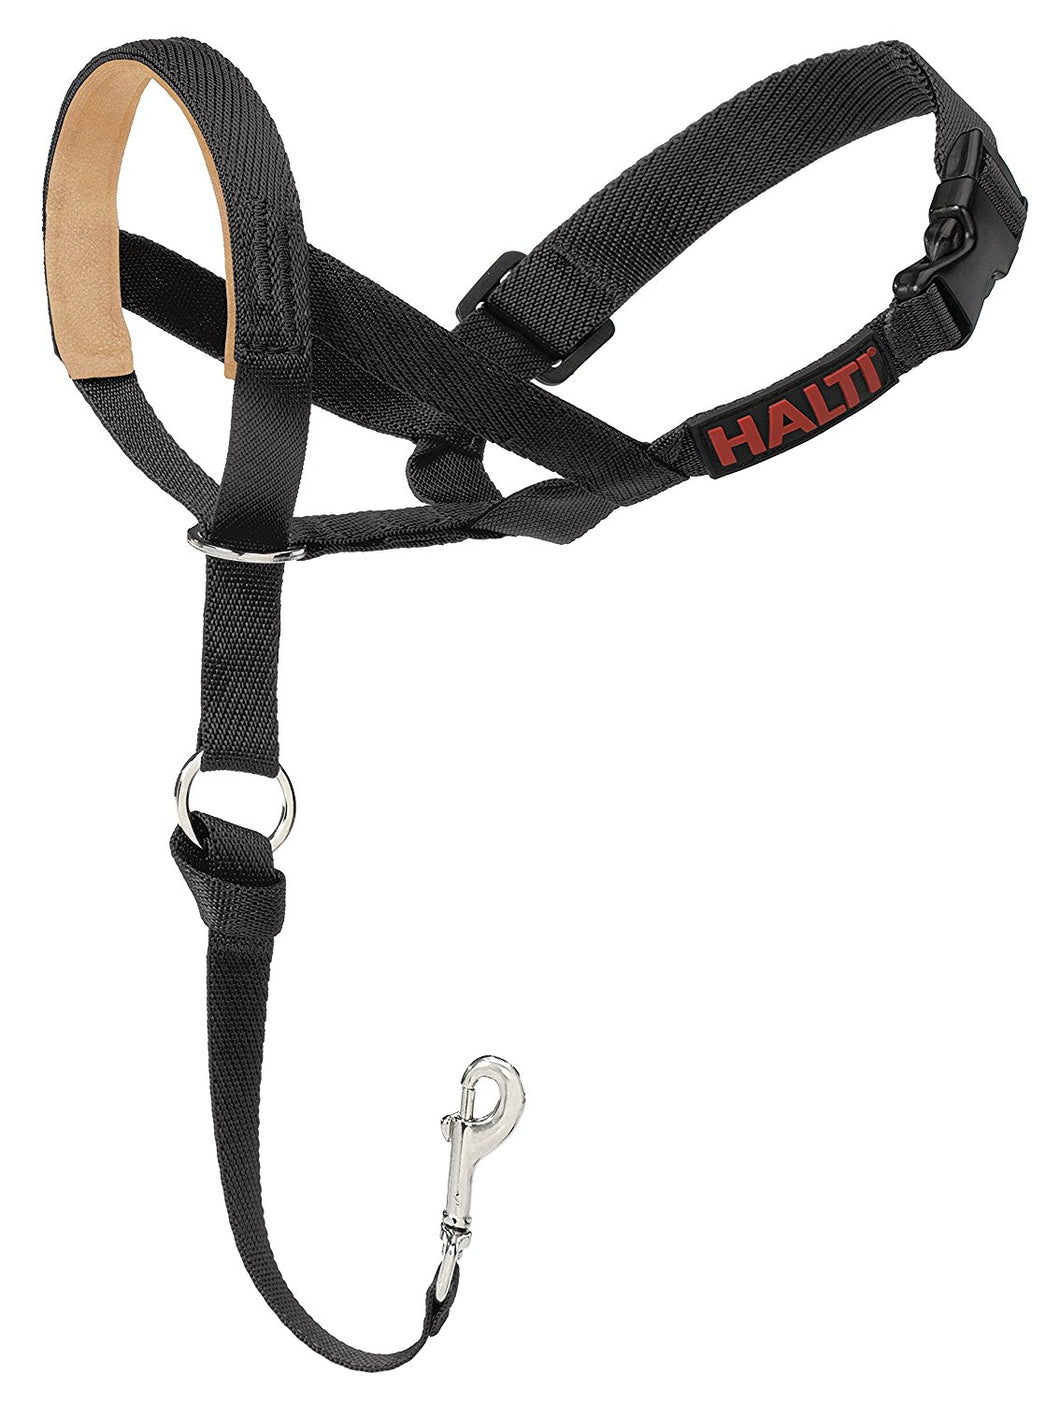 Company of Animals Halti Padded Headcollar